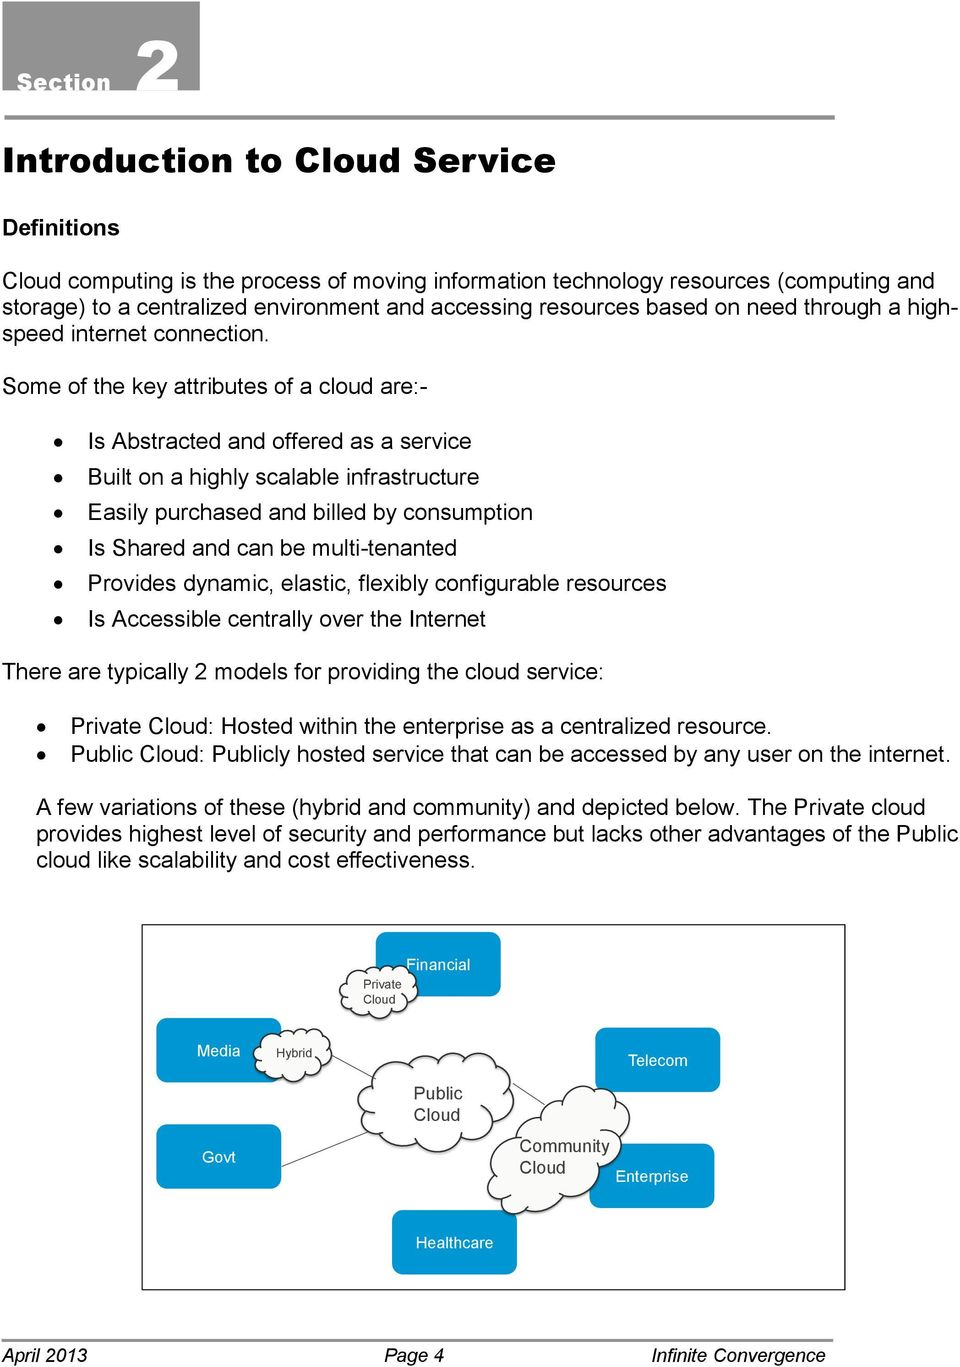 Some of the key attributes of a cloud are:- Is Abstracted and offered as a service Built on a highly scalable infrastructure Easily purchased and billed by consumption Is Shared and can be